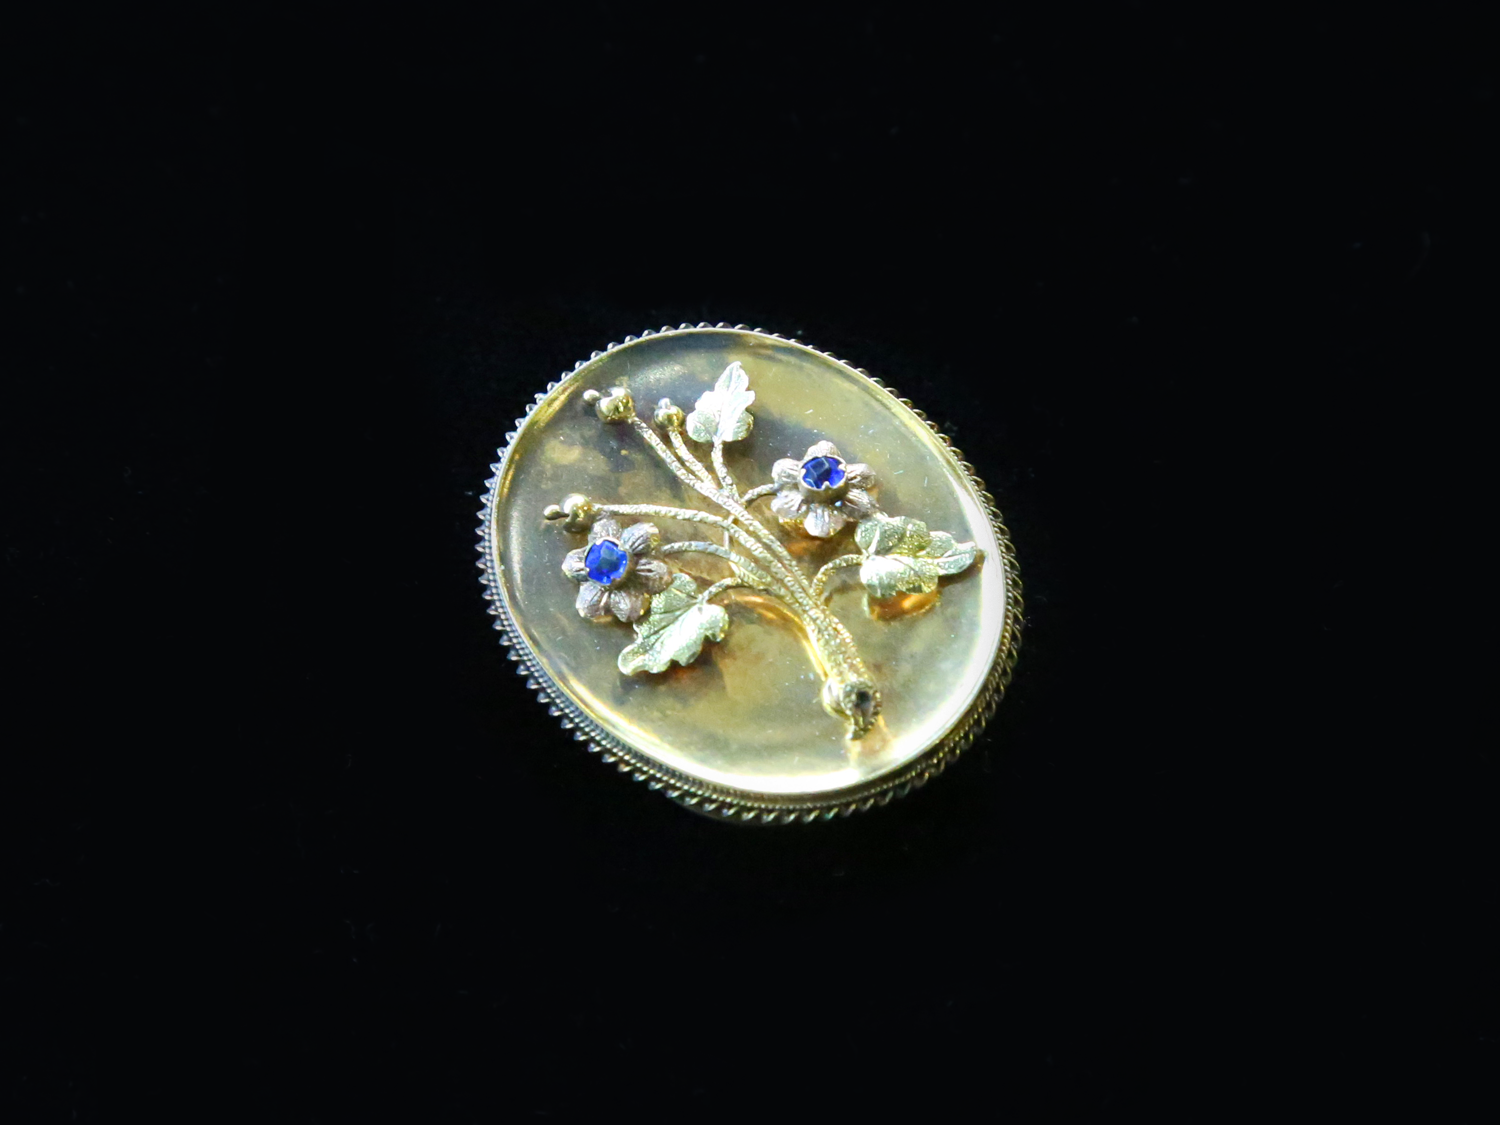 Antique 15ct Gold Flower Brooch